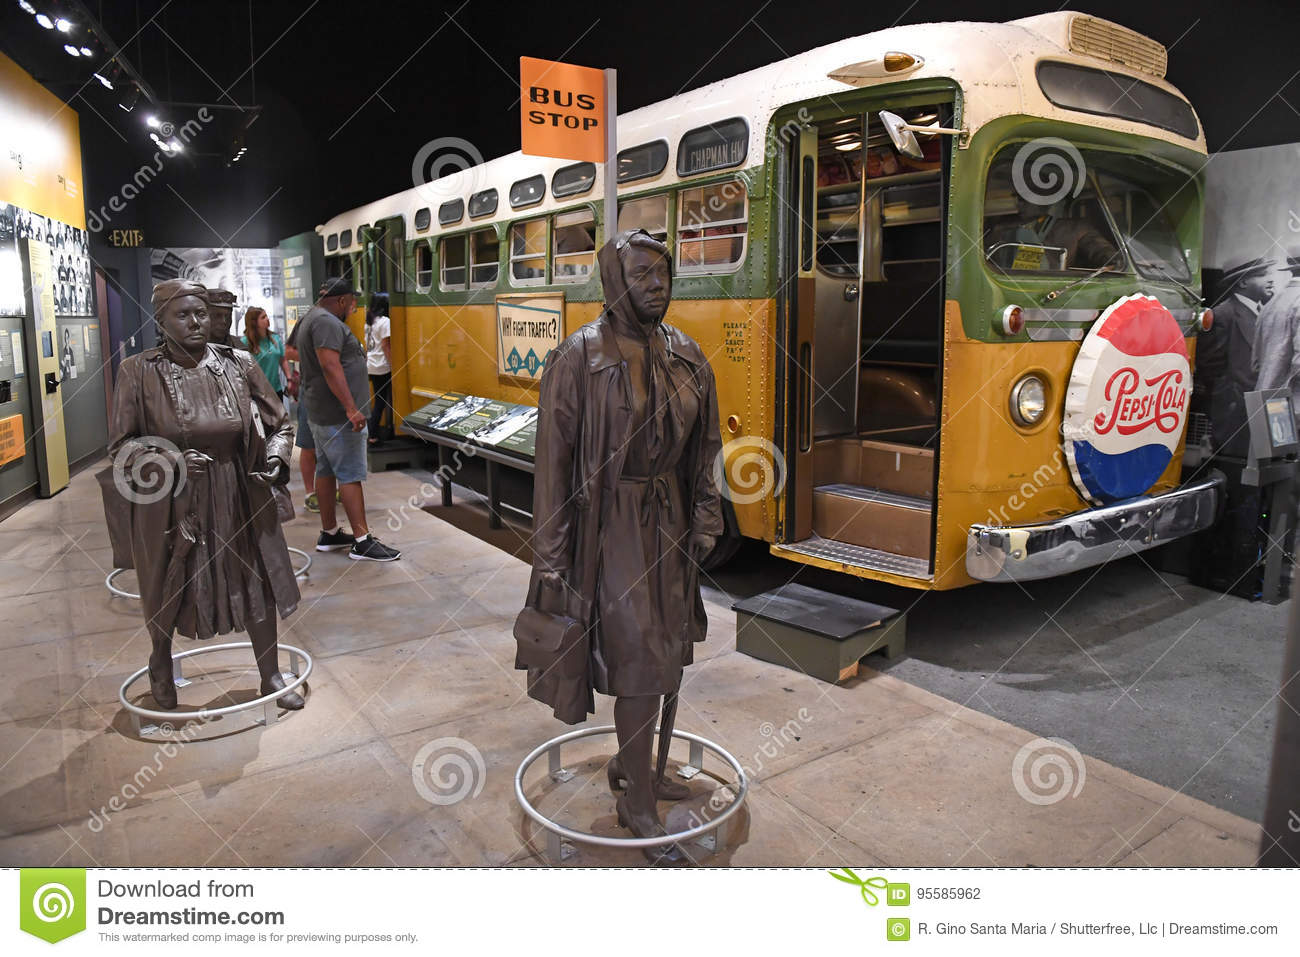 The National Civil Rights Museum in Memphis Tennessee